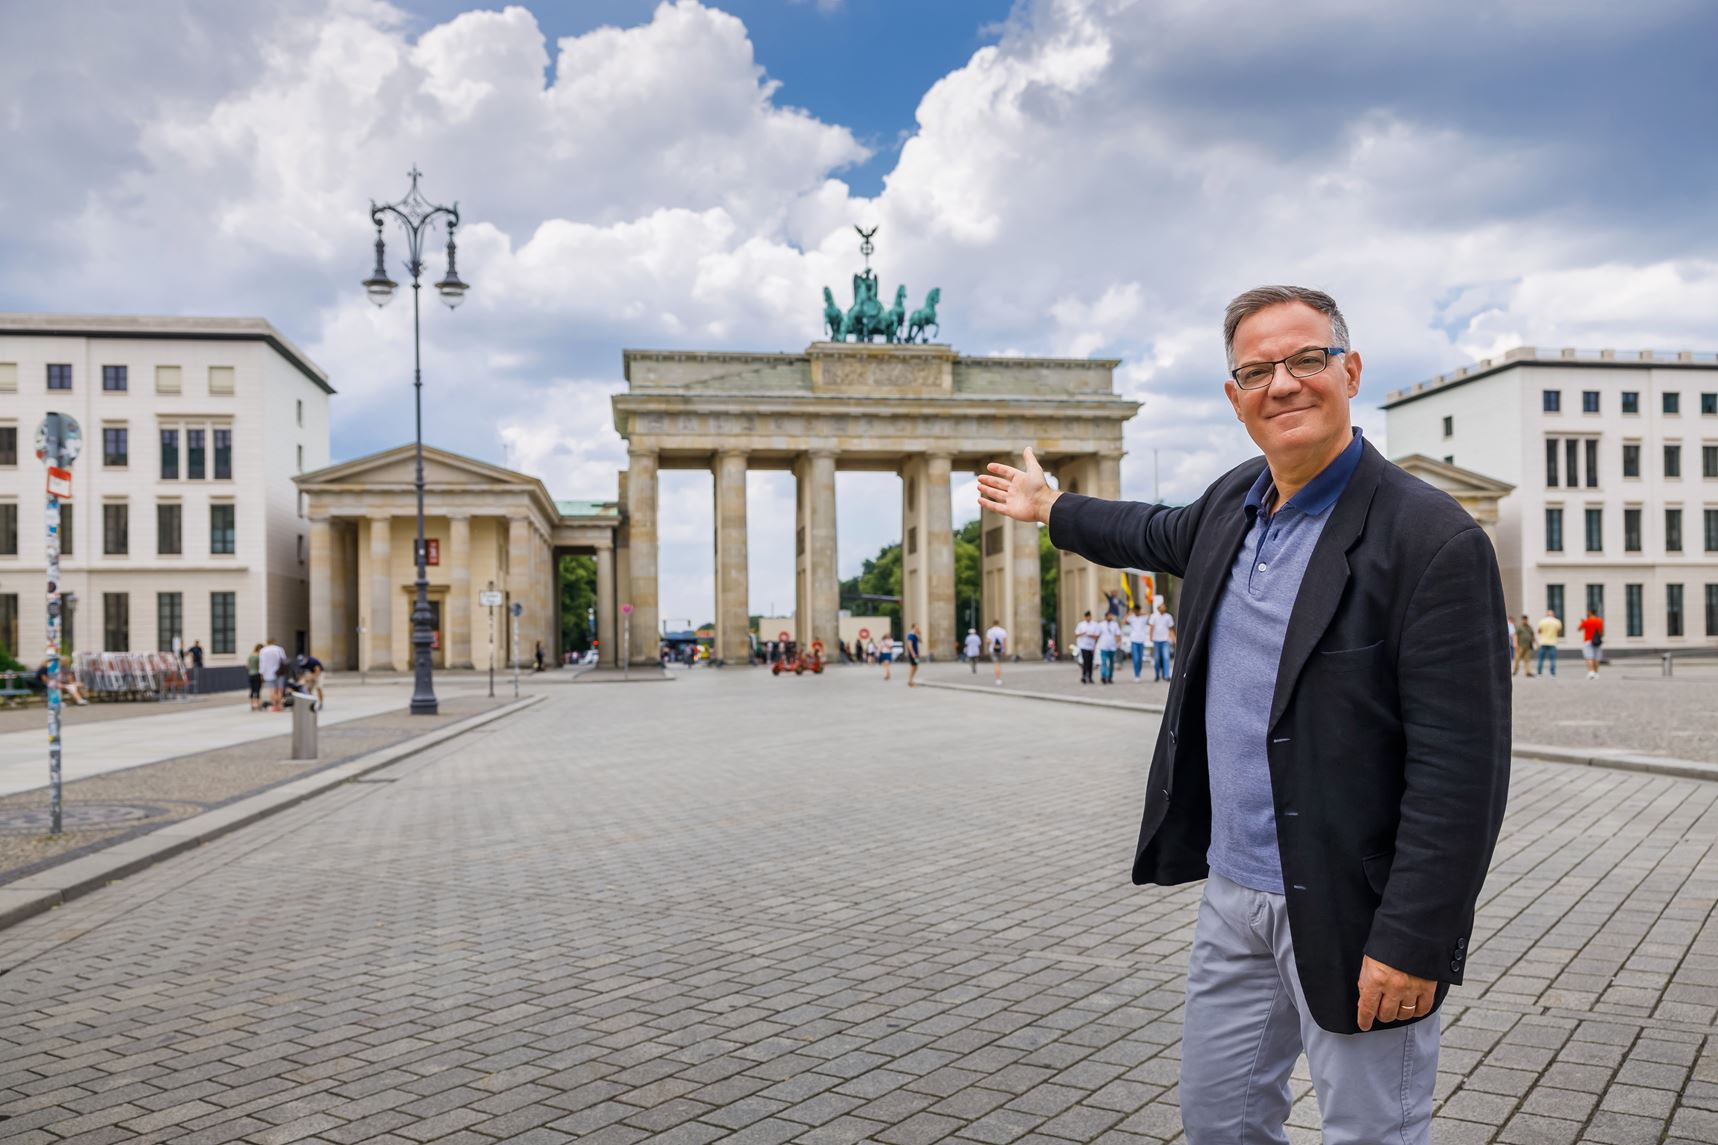 private tour guide Berlin in front of the Brandenburger Tor